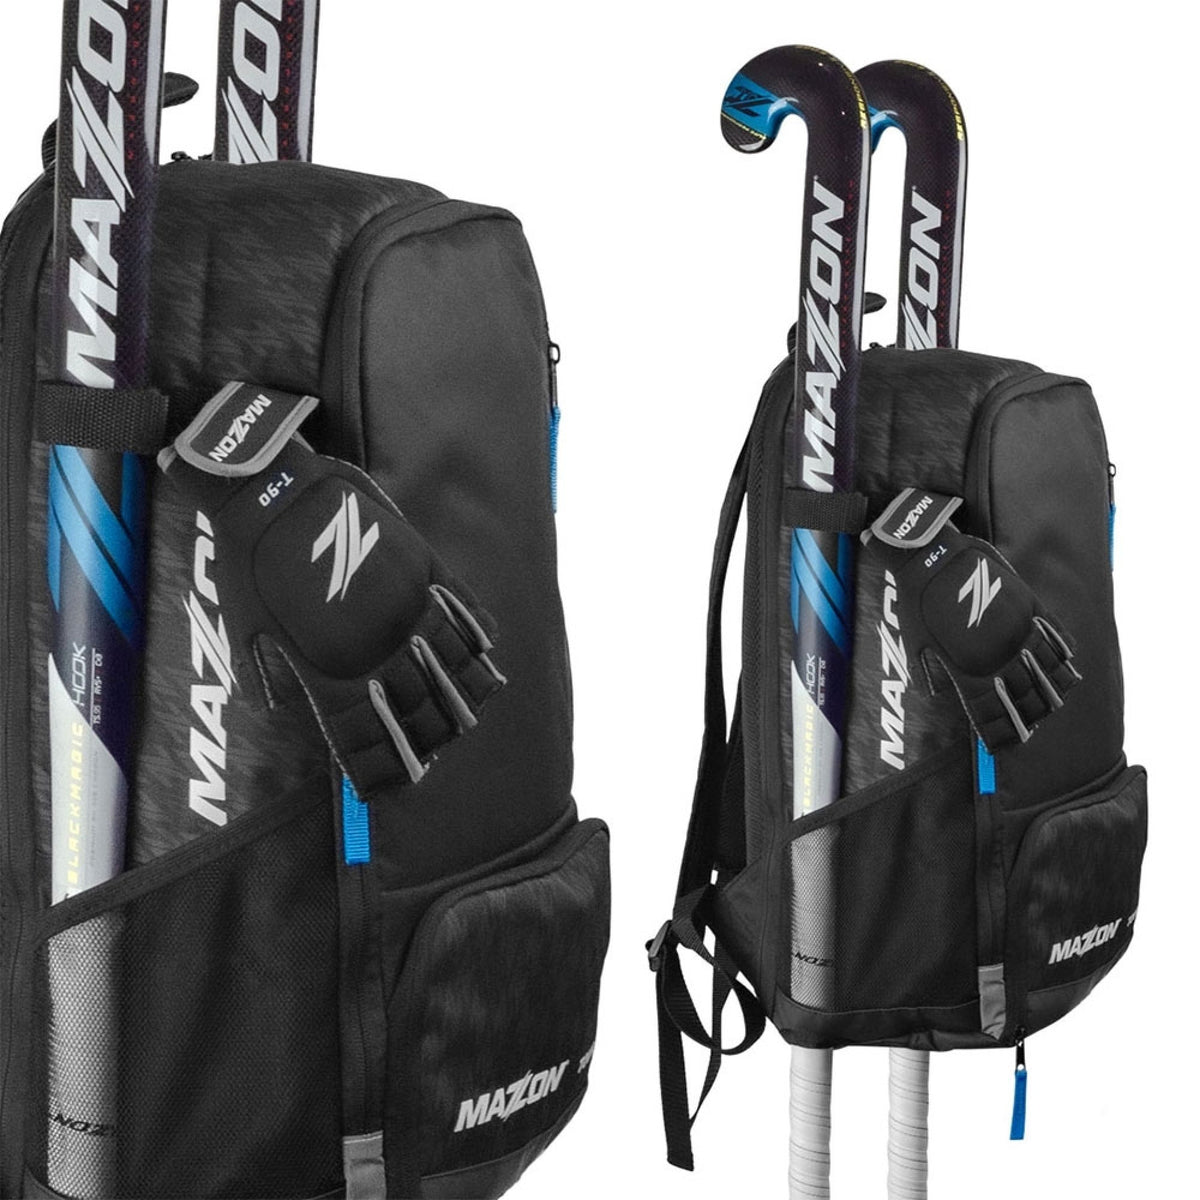 Mazon Tour Pro Backpack